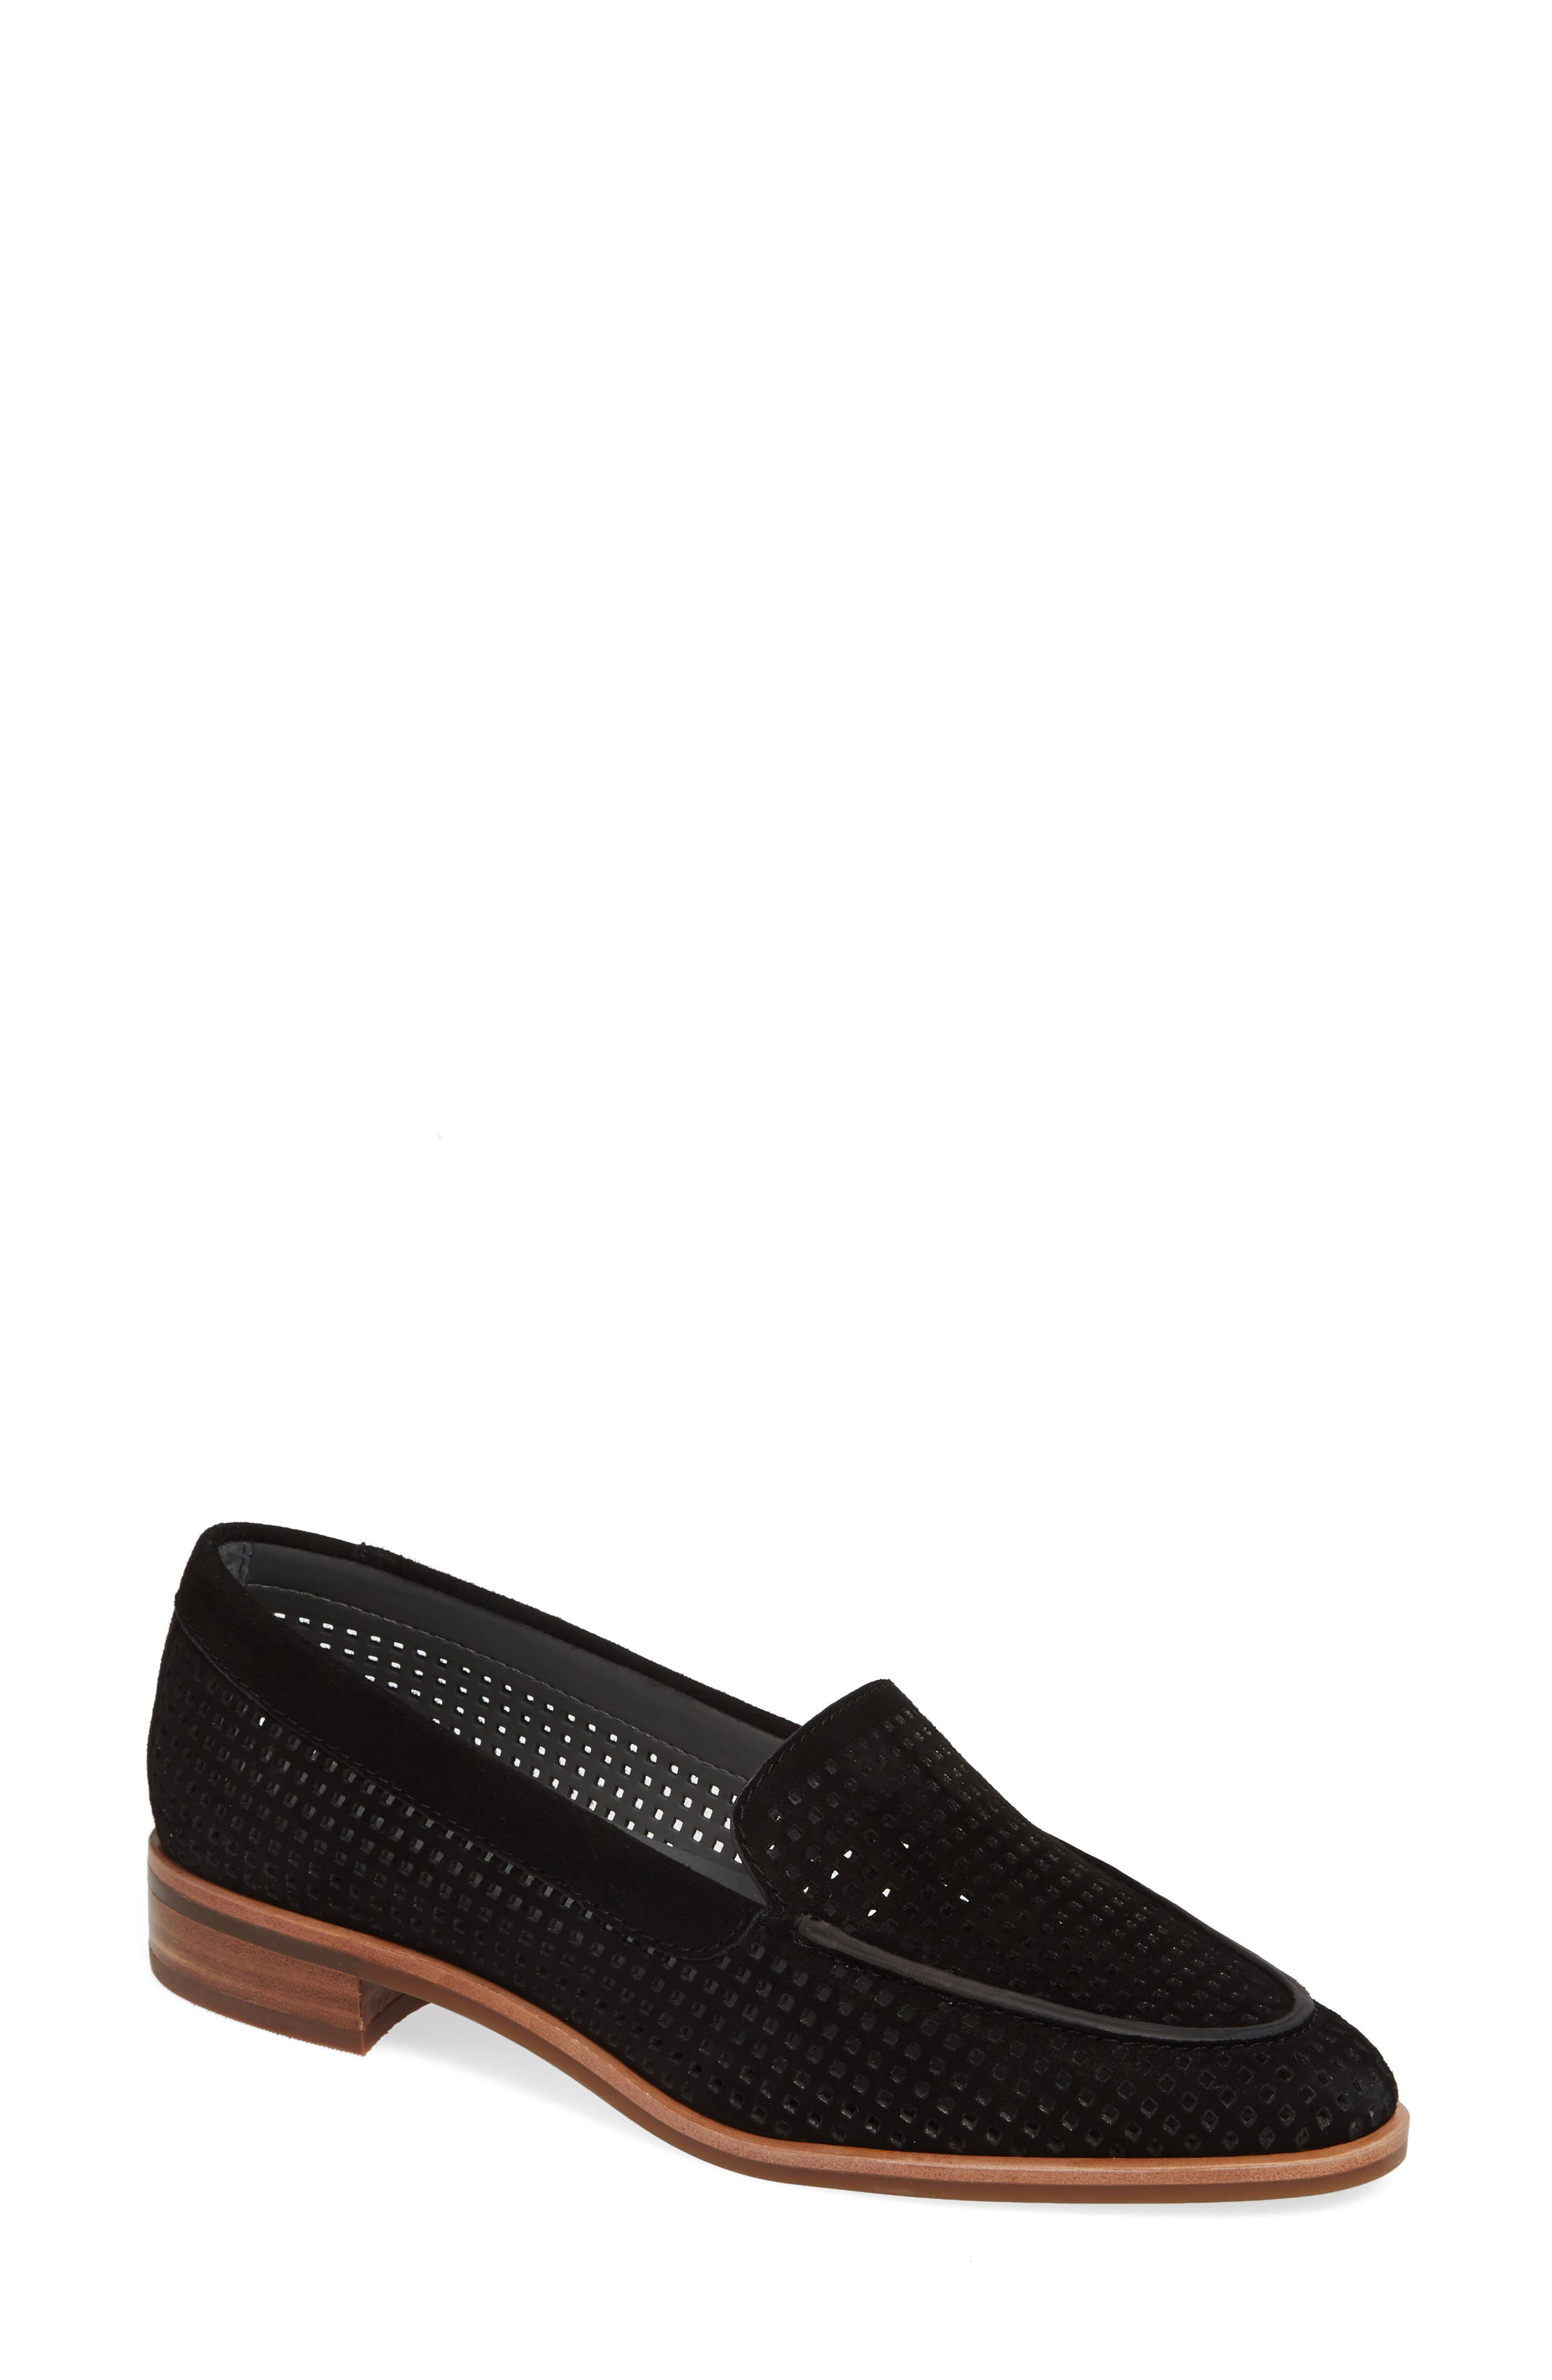 The Flexx Chelsea Peforated Loafer- Black